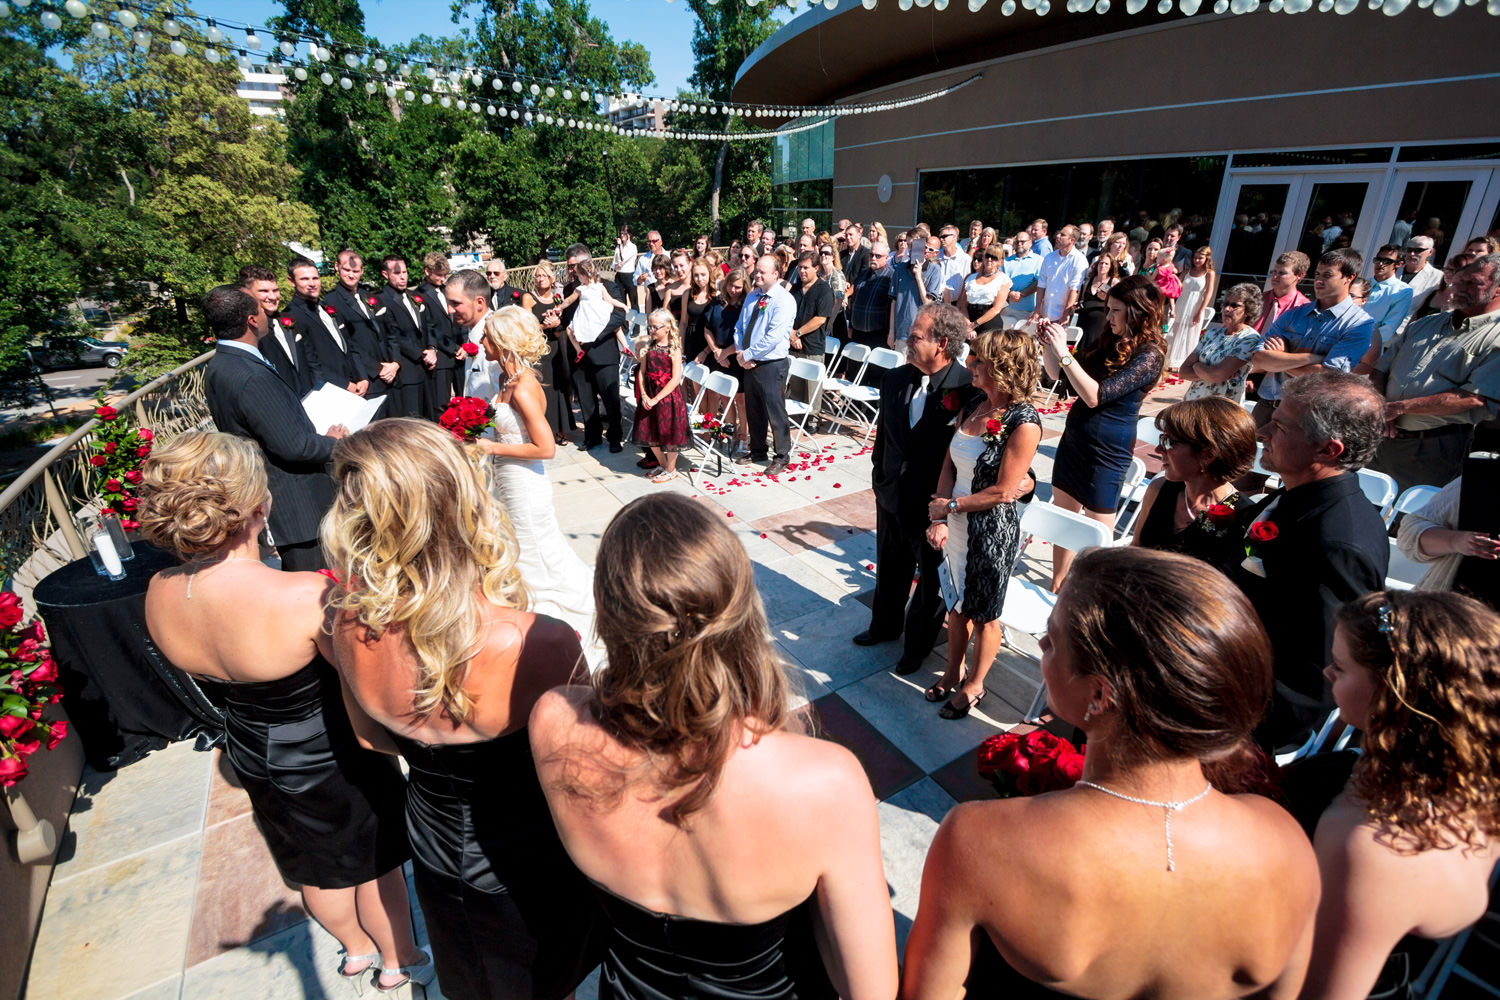 lincoln-center-fort-collins-wedding-tomKphoto-103.jpg